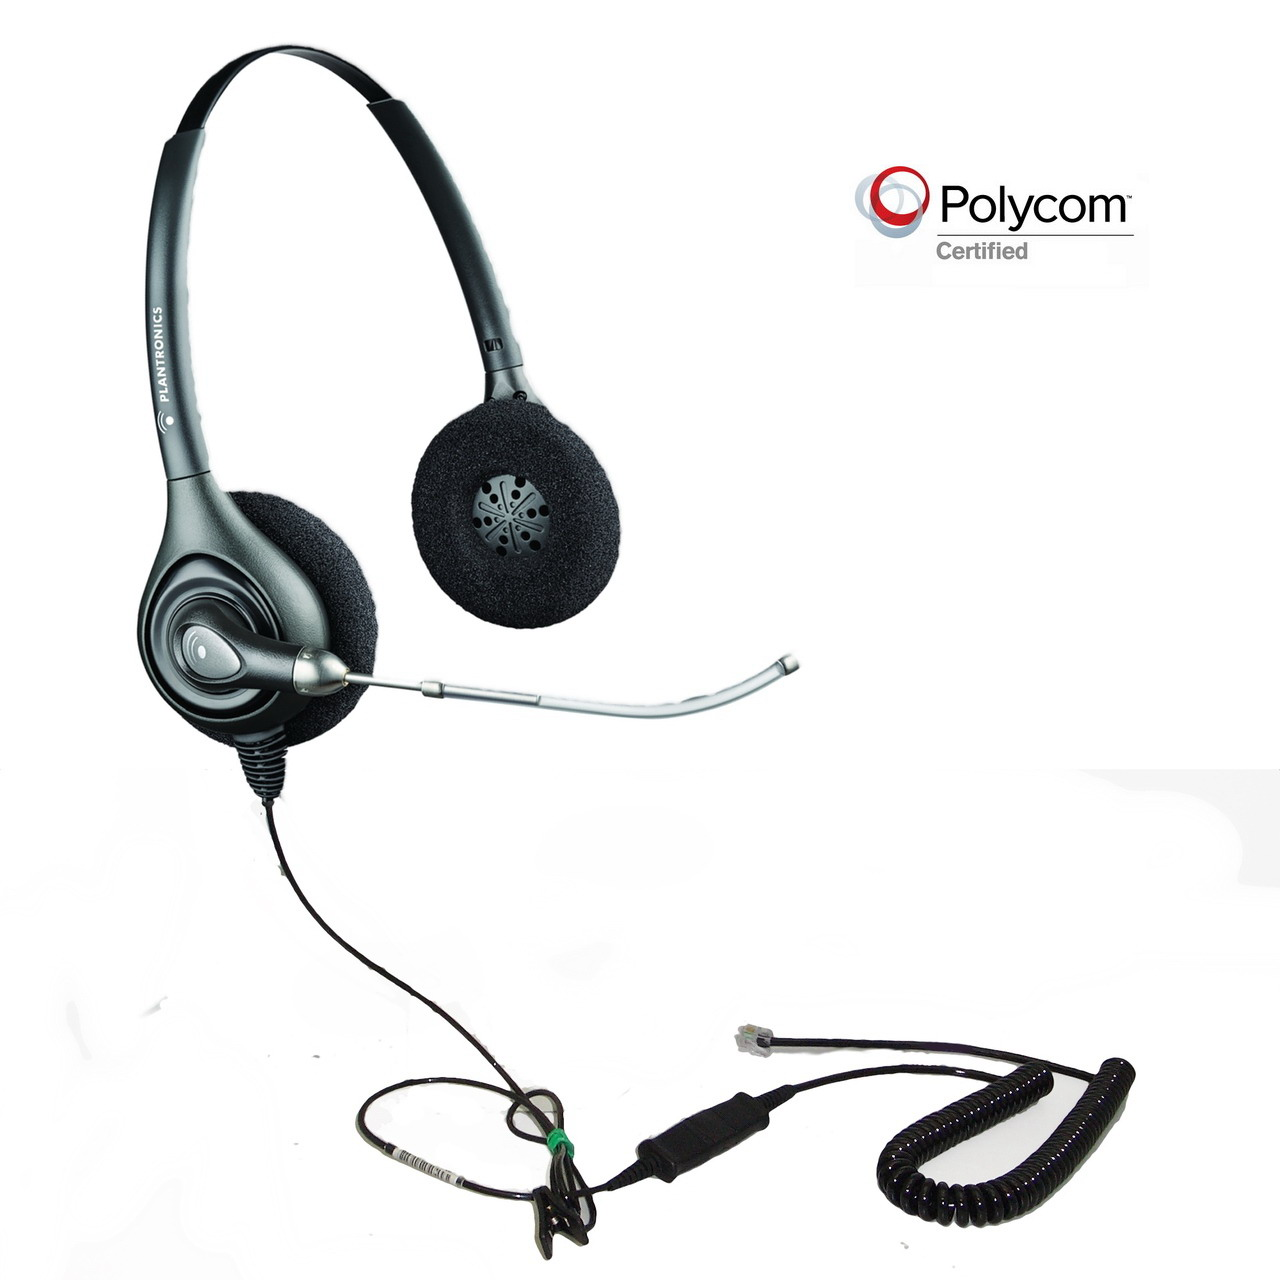 Plantronics HW261-POLY Polycom Compatible Binaural Voice Tube He